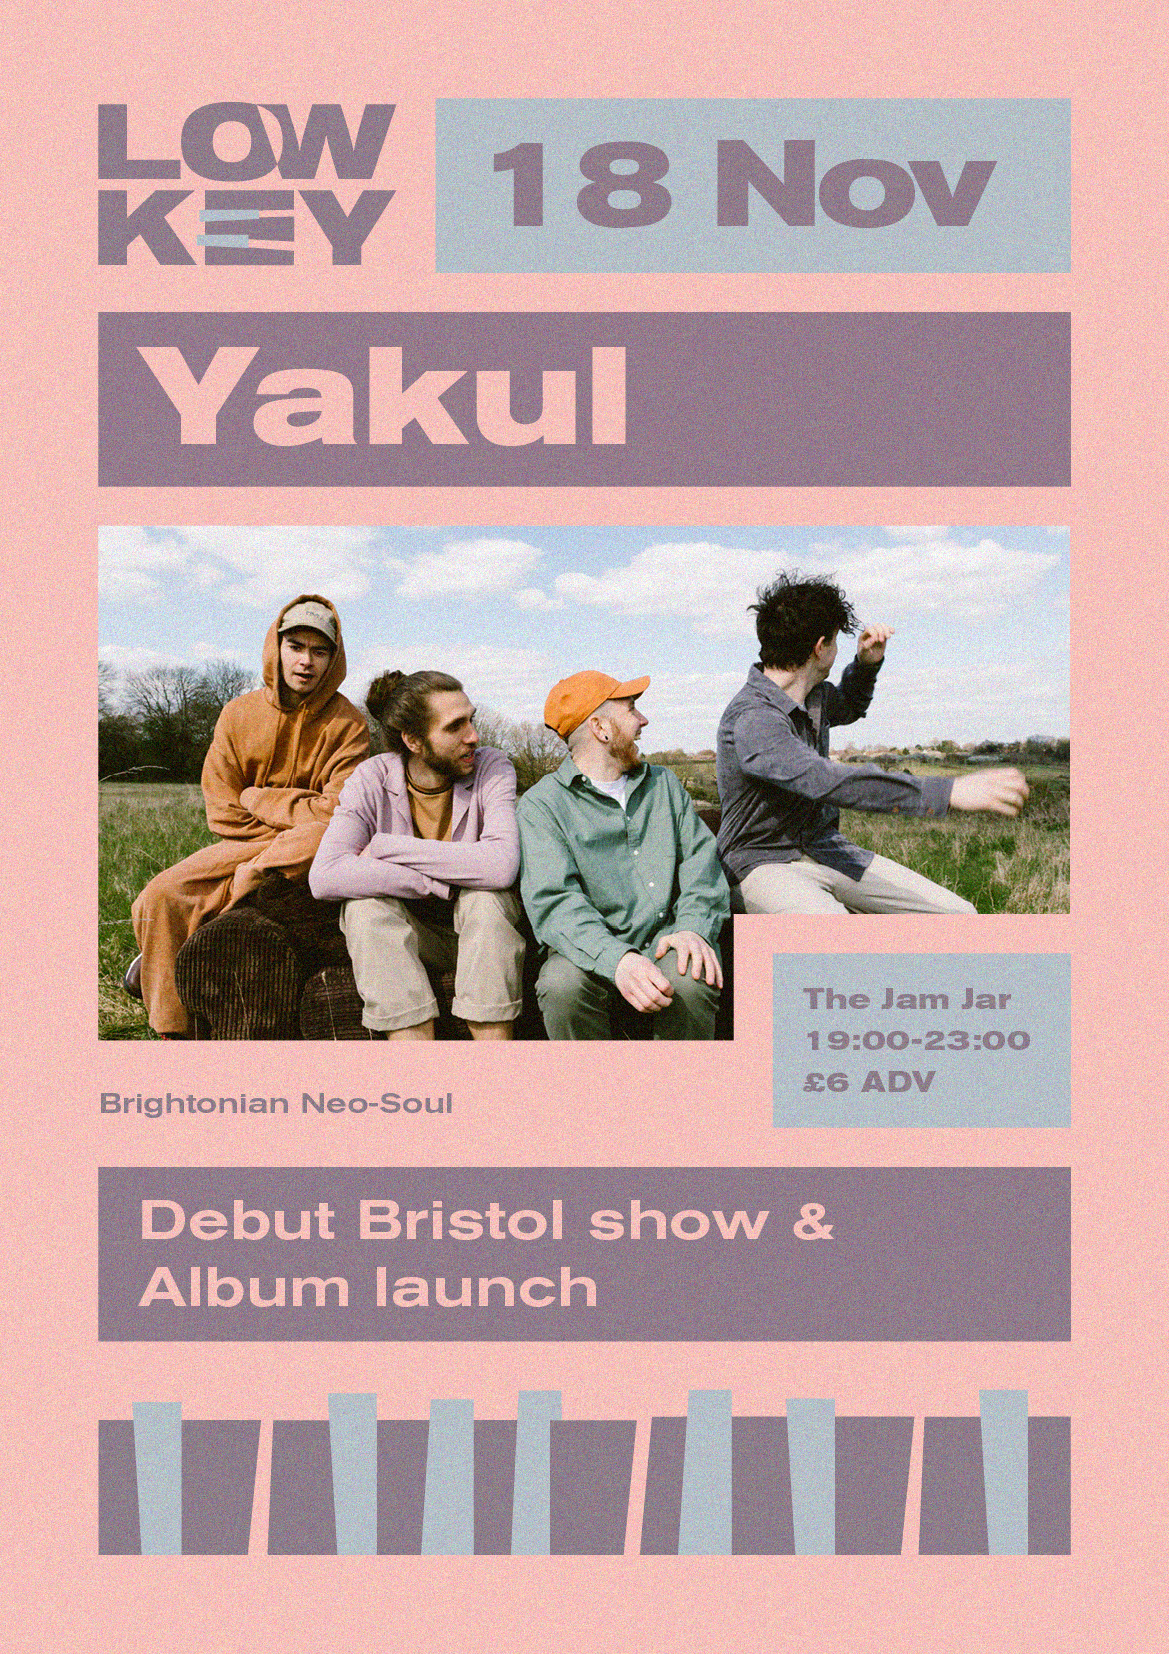 Event Poster For LowKey: Yakul + Support